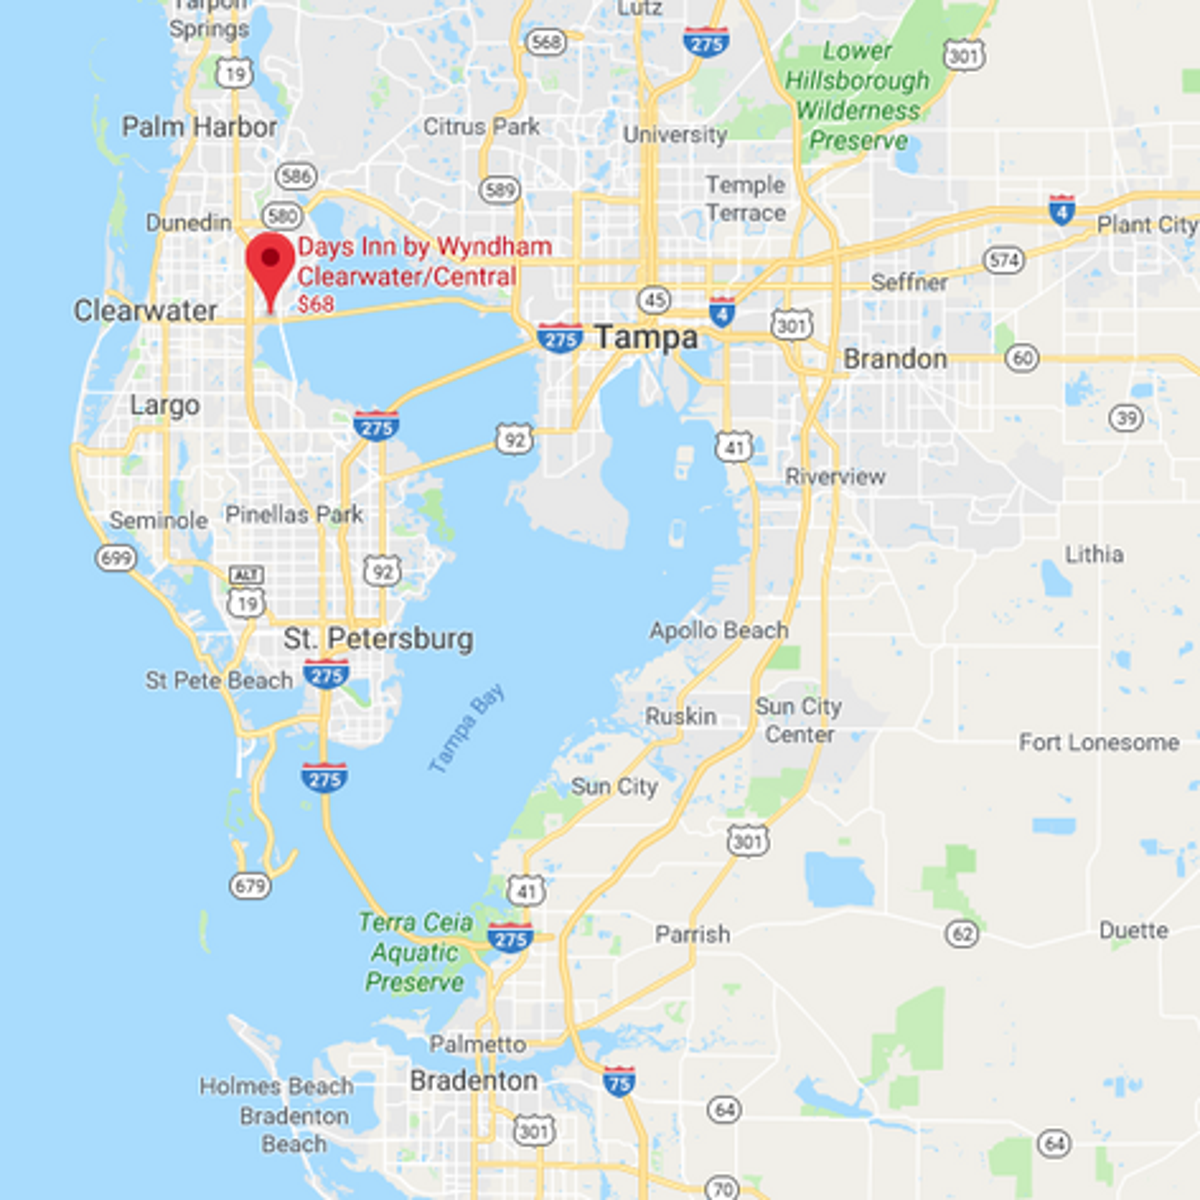 Florida Beach Bacteria Map 2019 Woman dies after contracting flesh eating bacteria in Florida